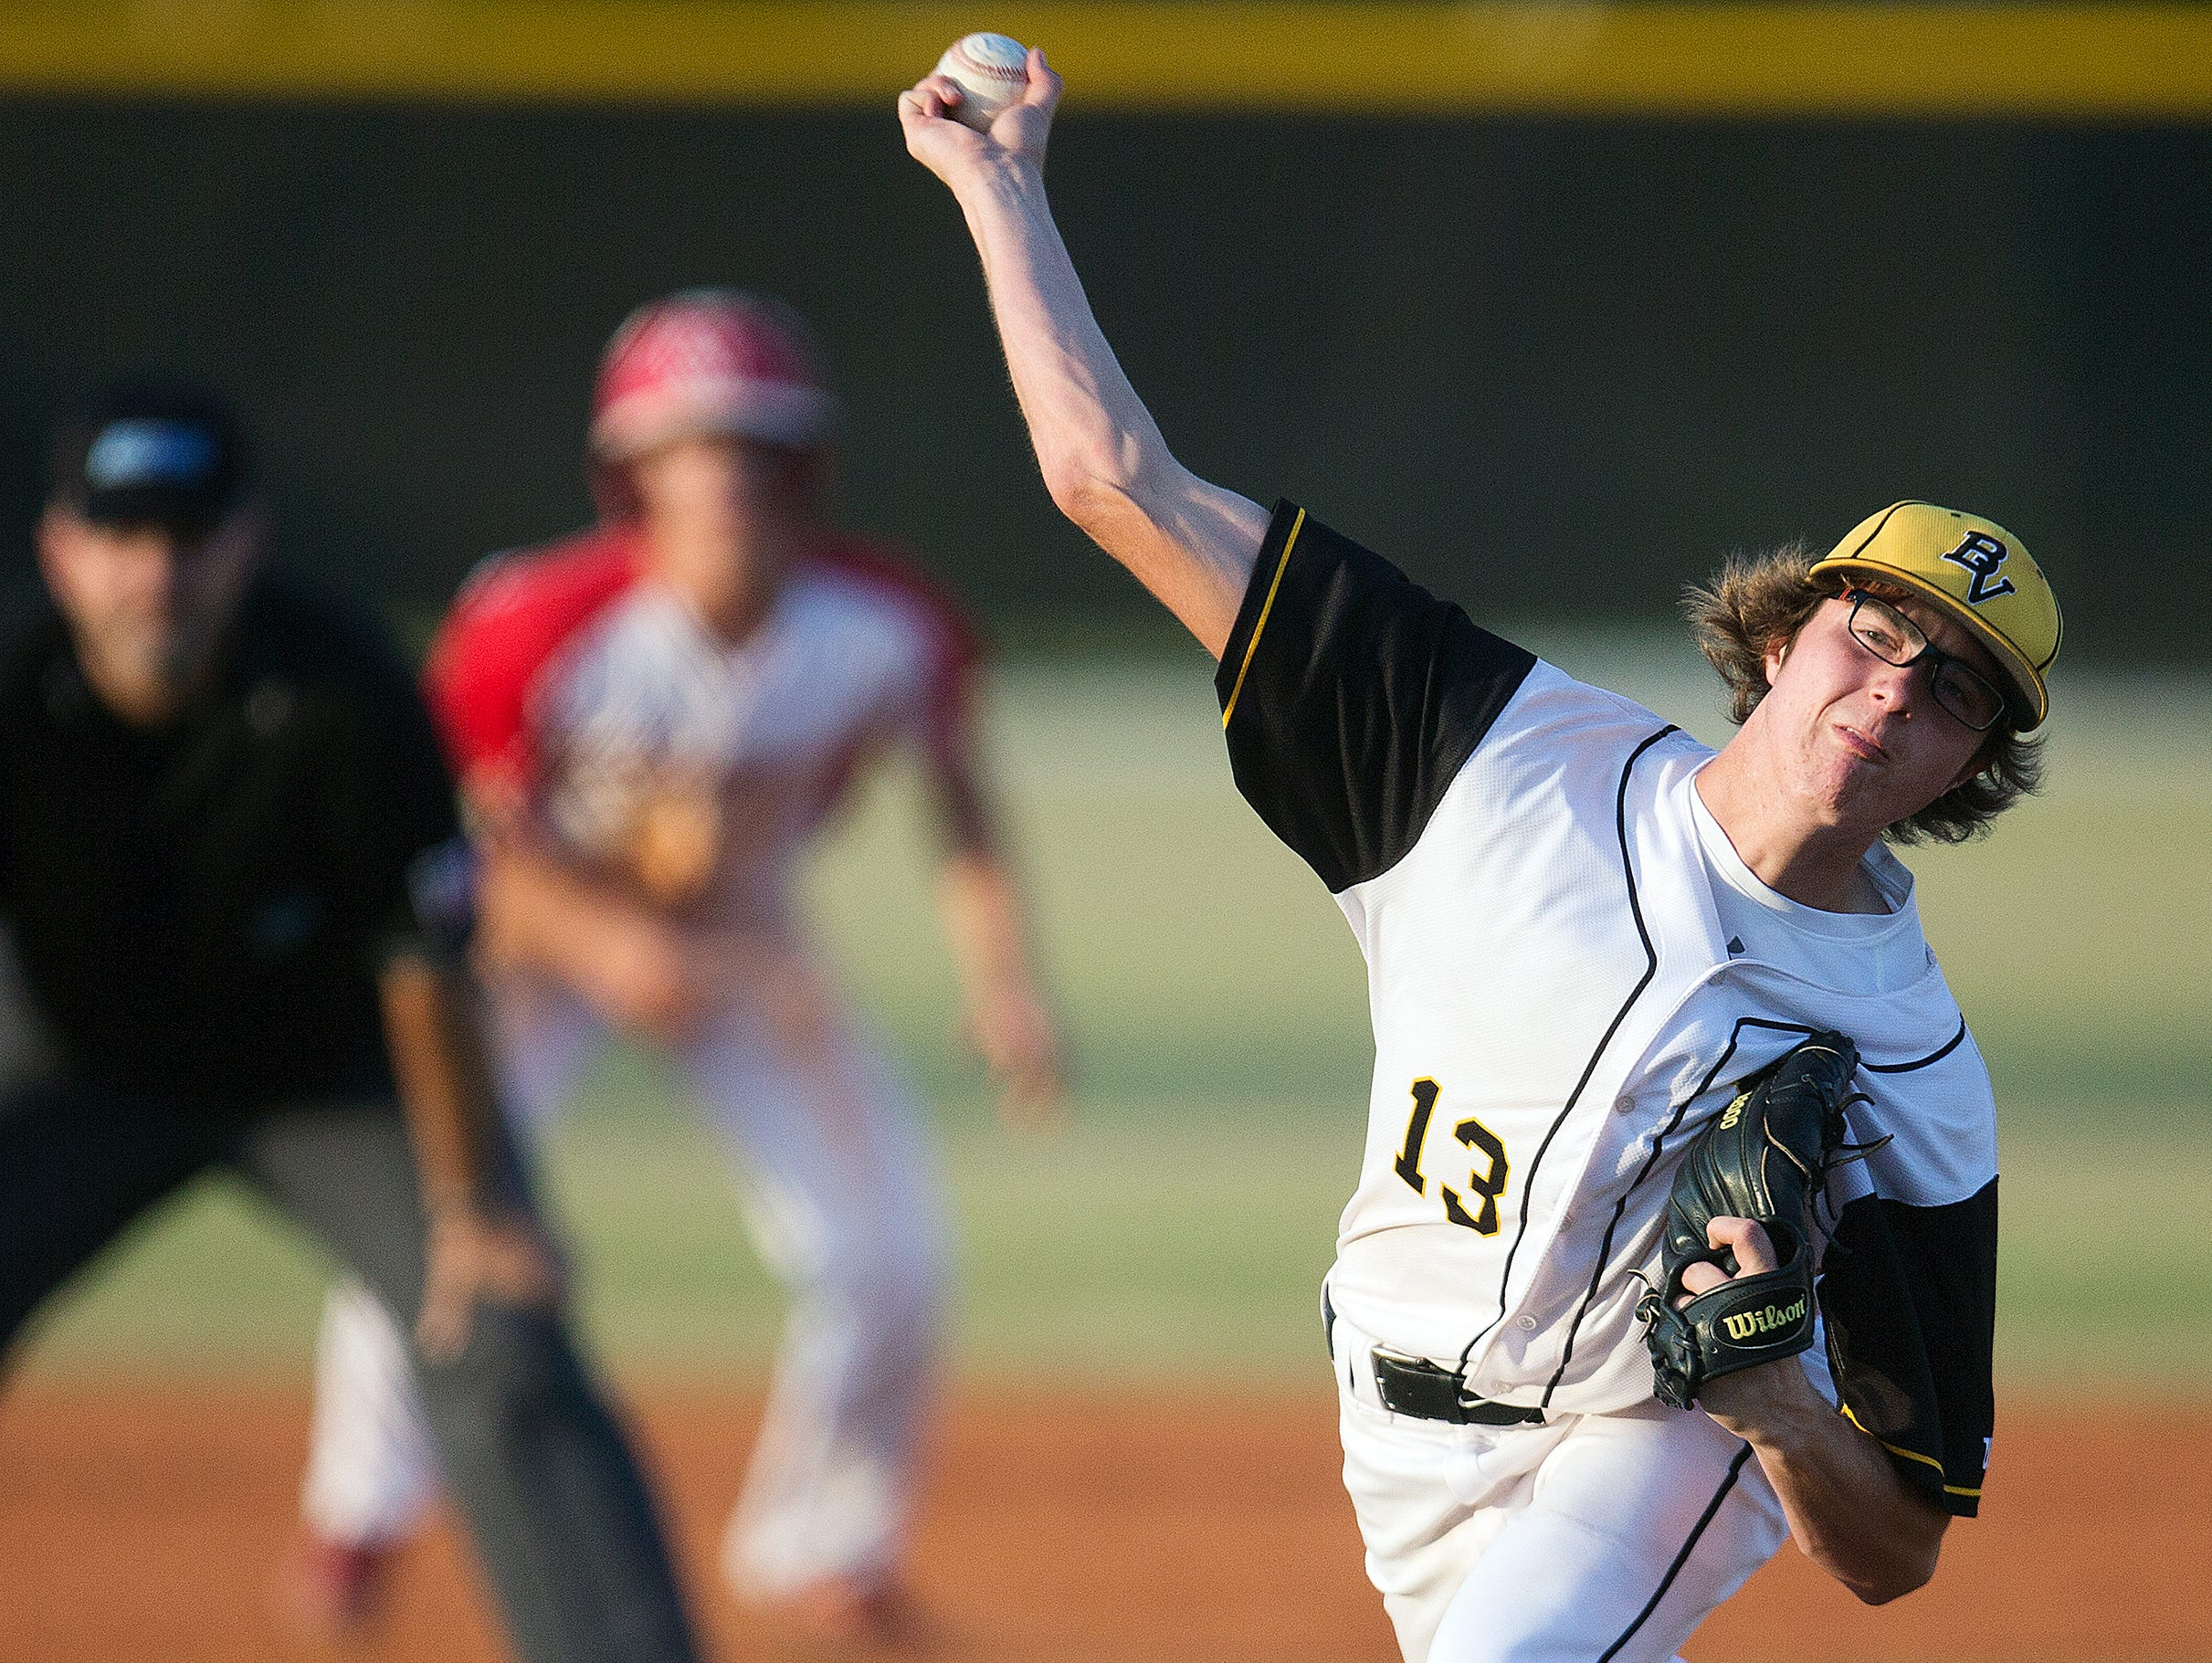 Bishop Verot's Drew Dwyer pitches against Cardinal Mooney in District 4A-5 baseball championship Friday (4/22/16) at Bishop Verot High School in Fort Myers.